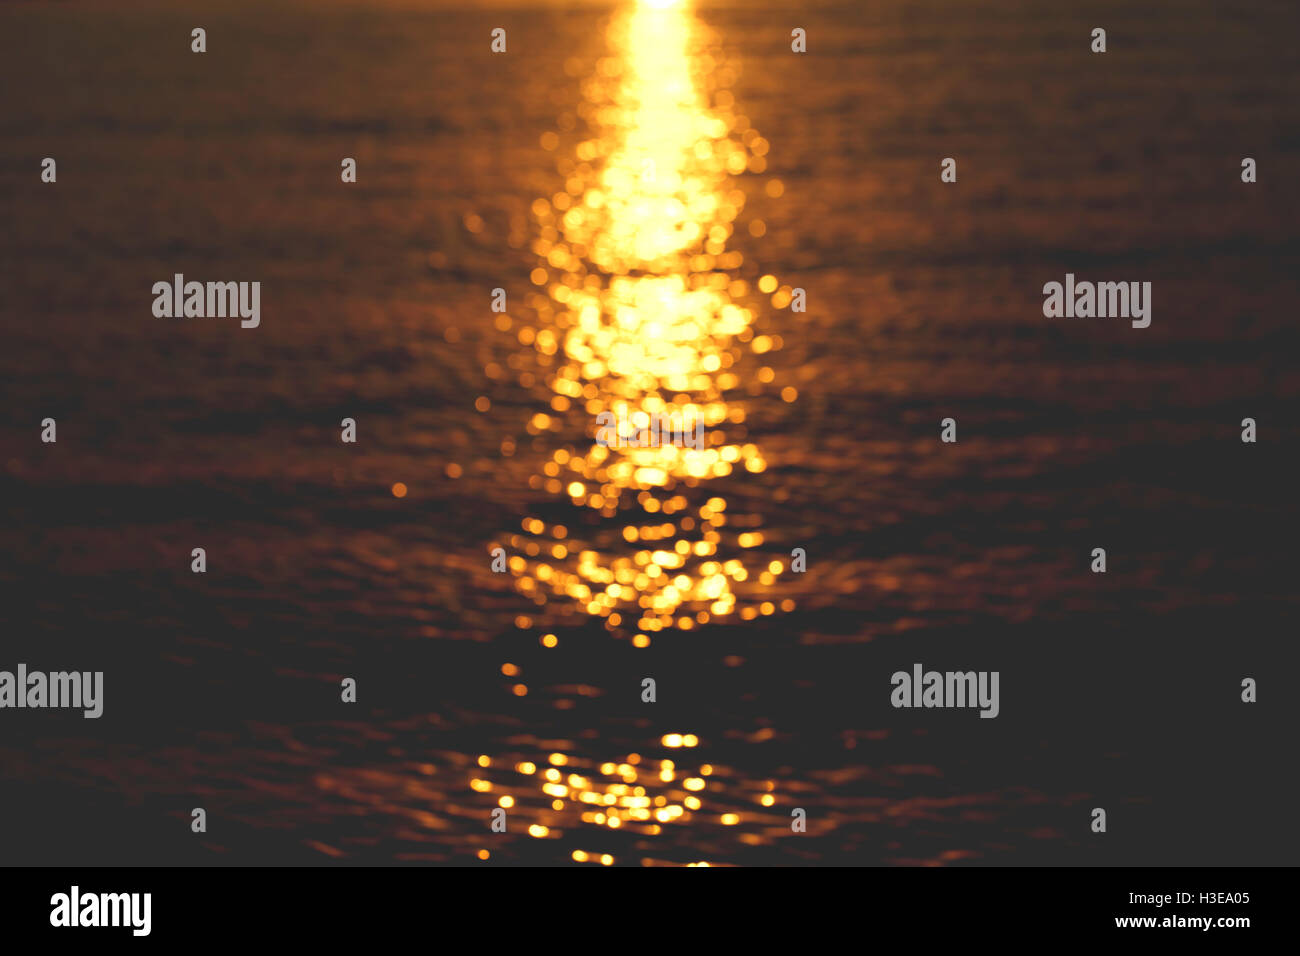 a sun glare on the water, beautiful background - Stock Image